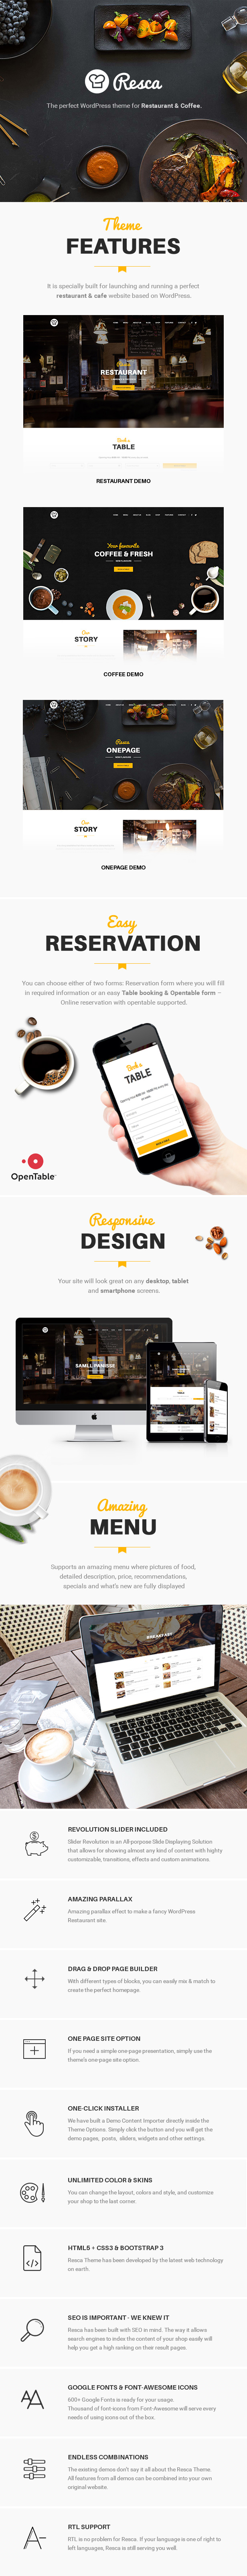 Restaurant WordPress Theme - Resca Download